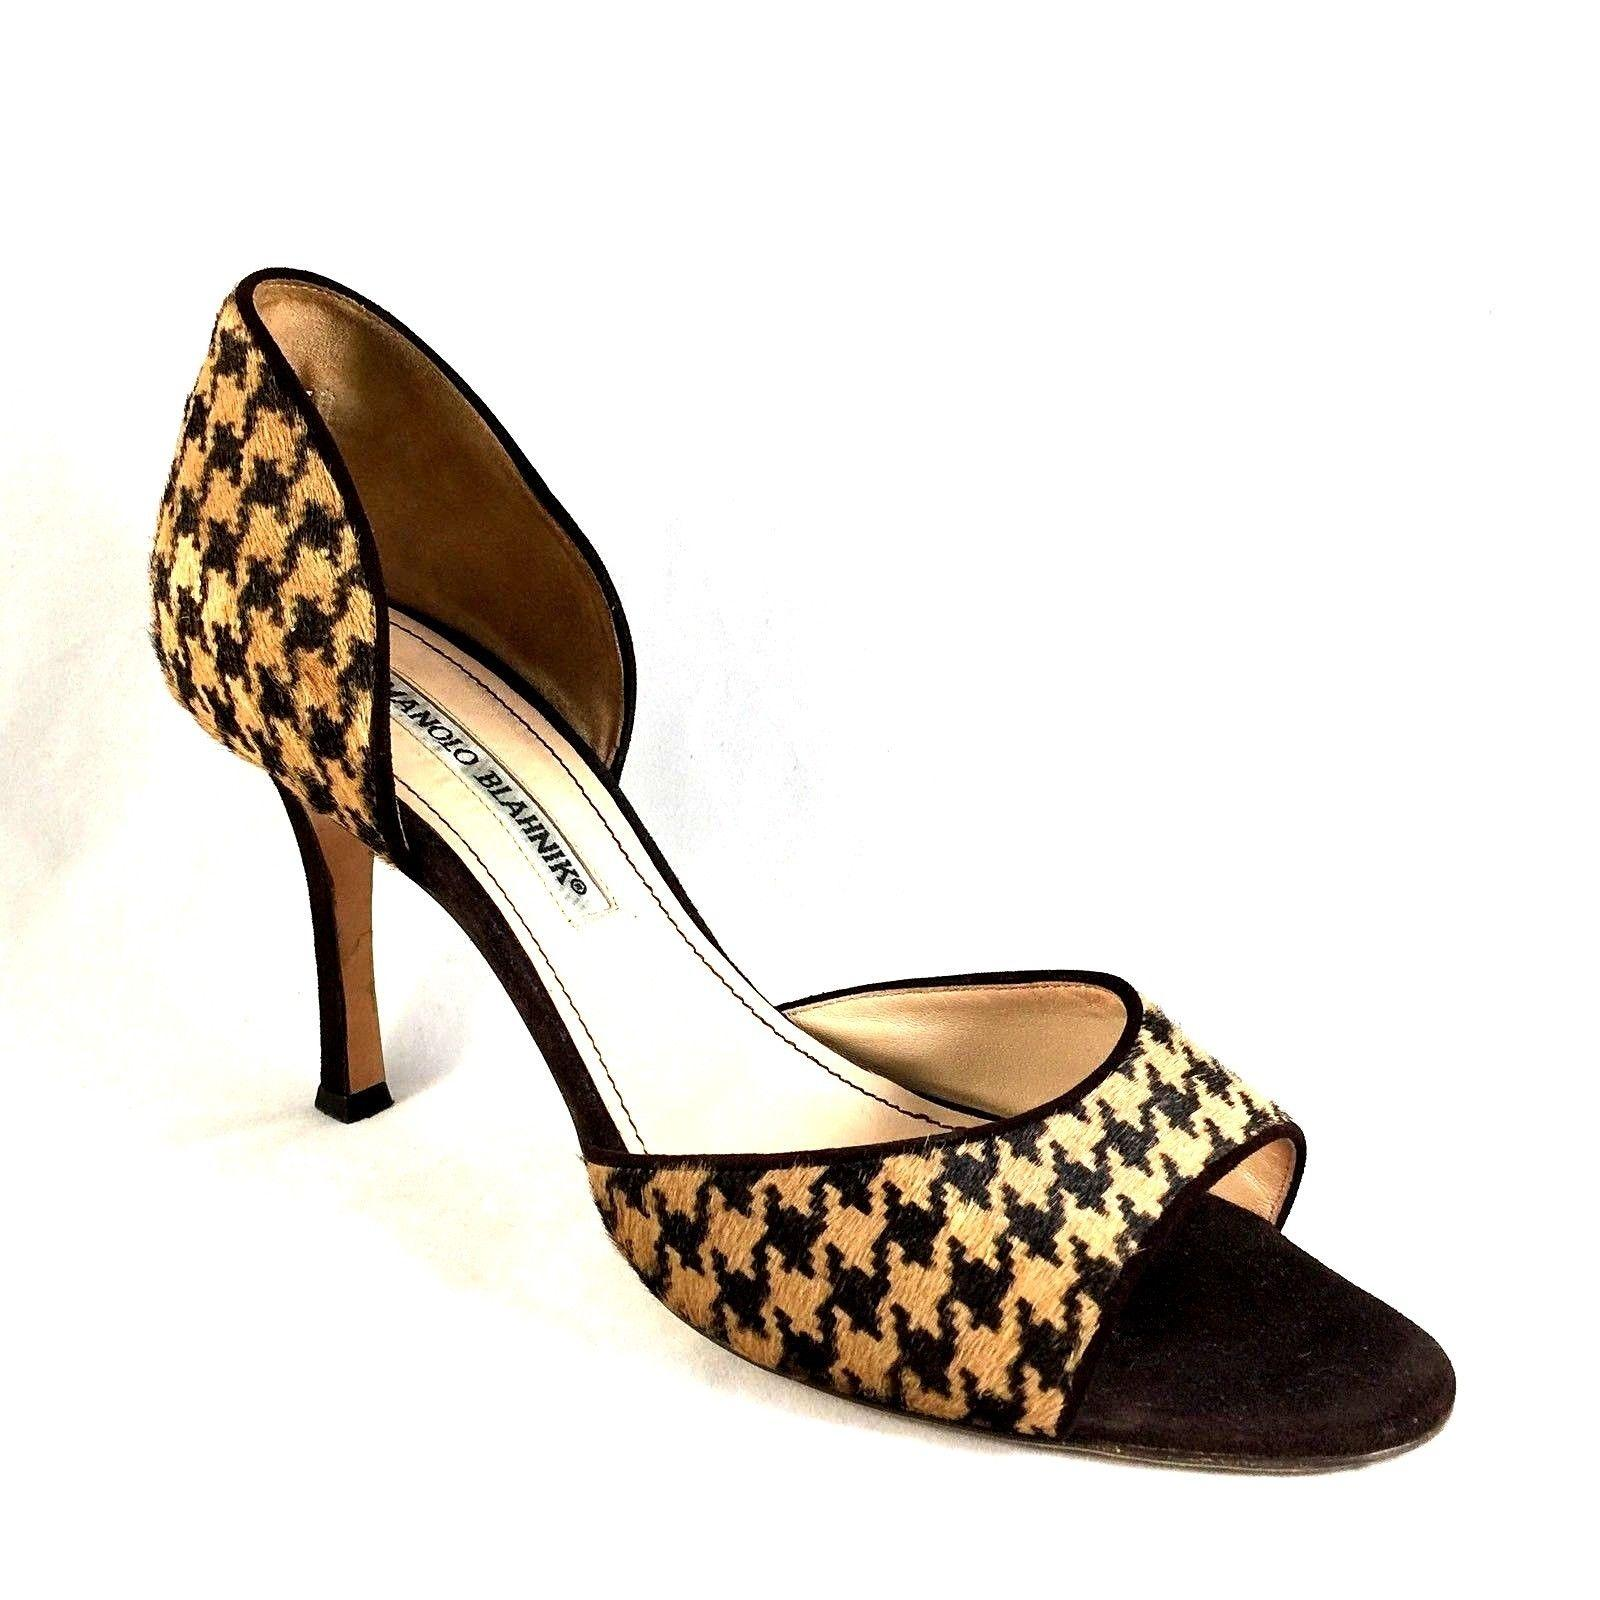 Manolo Blahnik Houndstooth-Trimmed Suede Pumps cheap sale 2015 best store to get cheap online Kbdyvv9